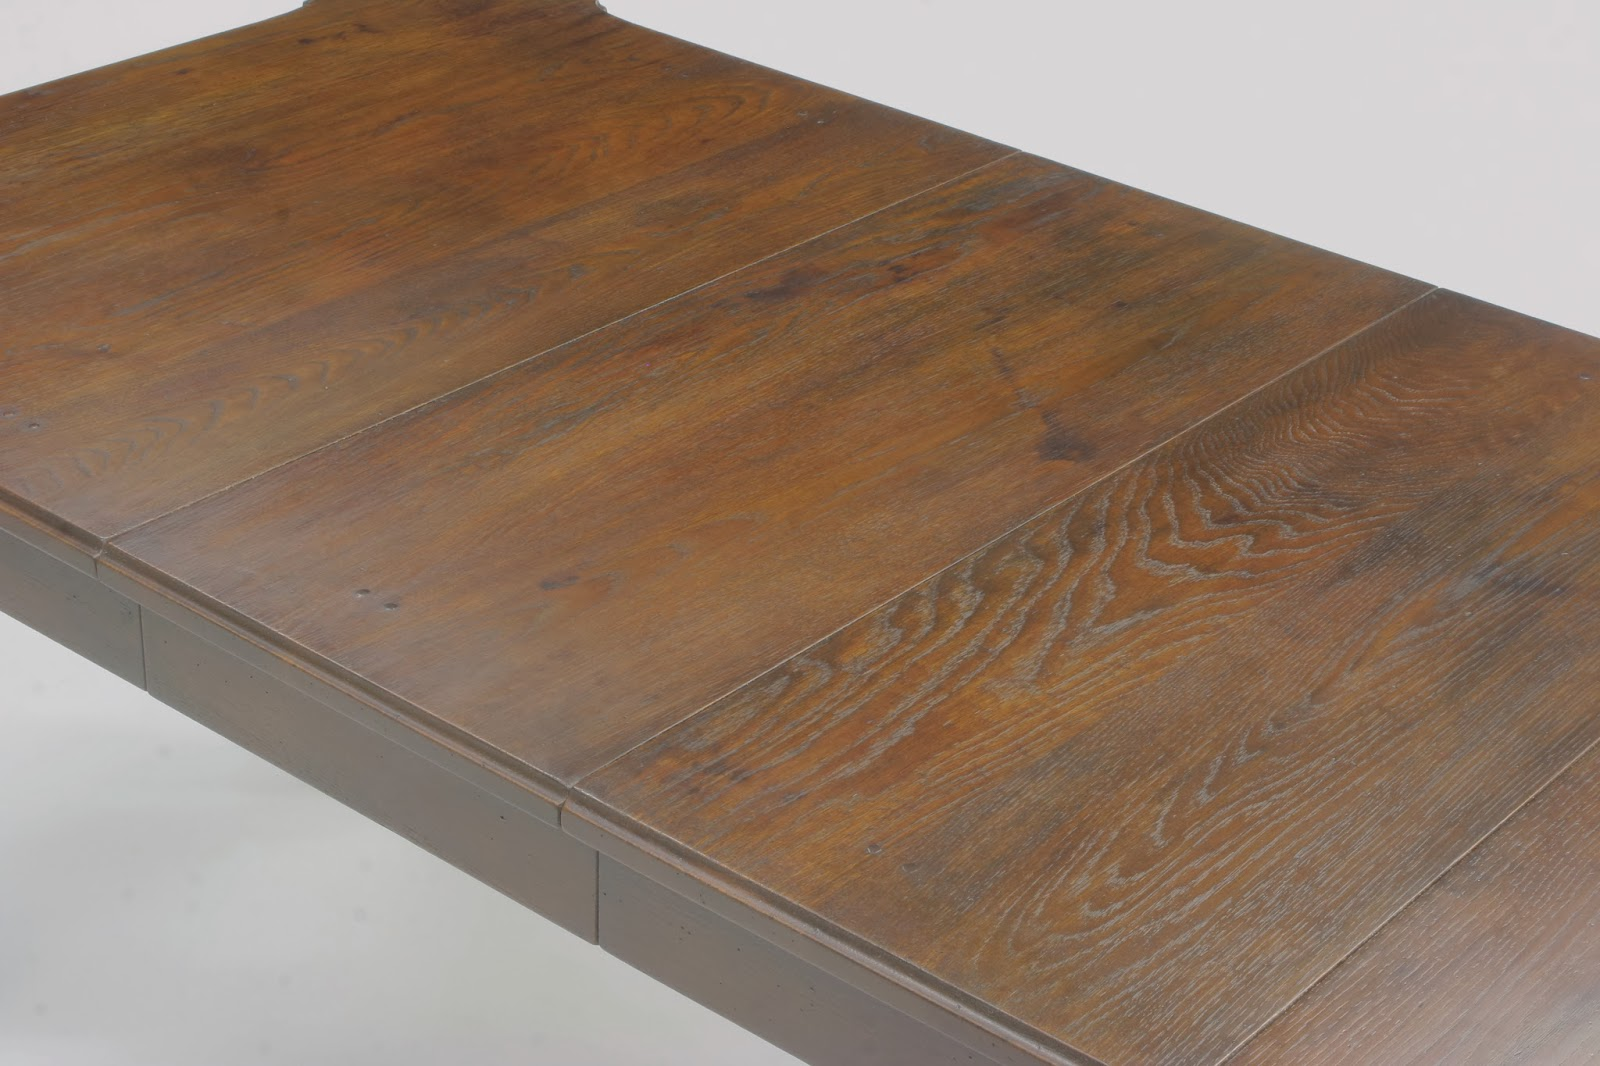 Amazing photo of this table was made to mimic what an antique piece would look like  with #714F34 color and 1600x1066 pixels